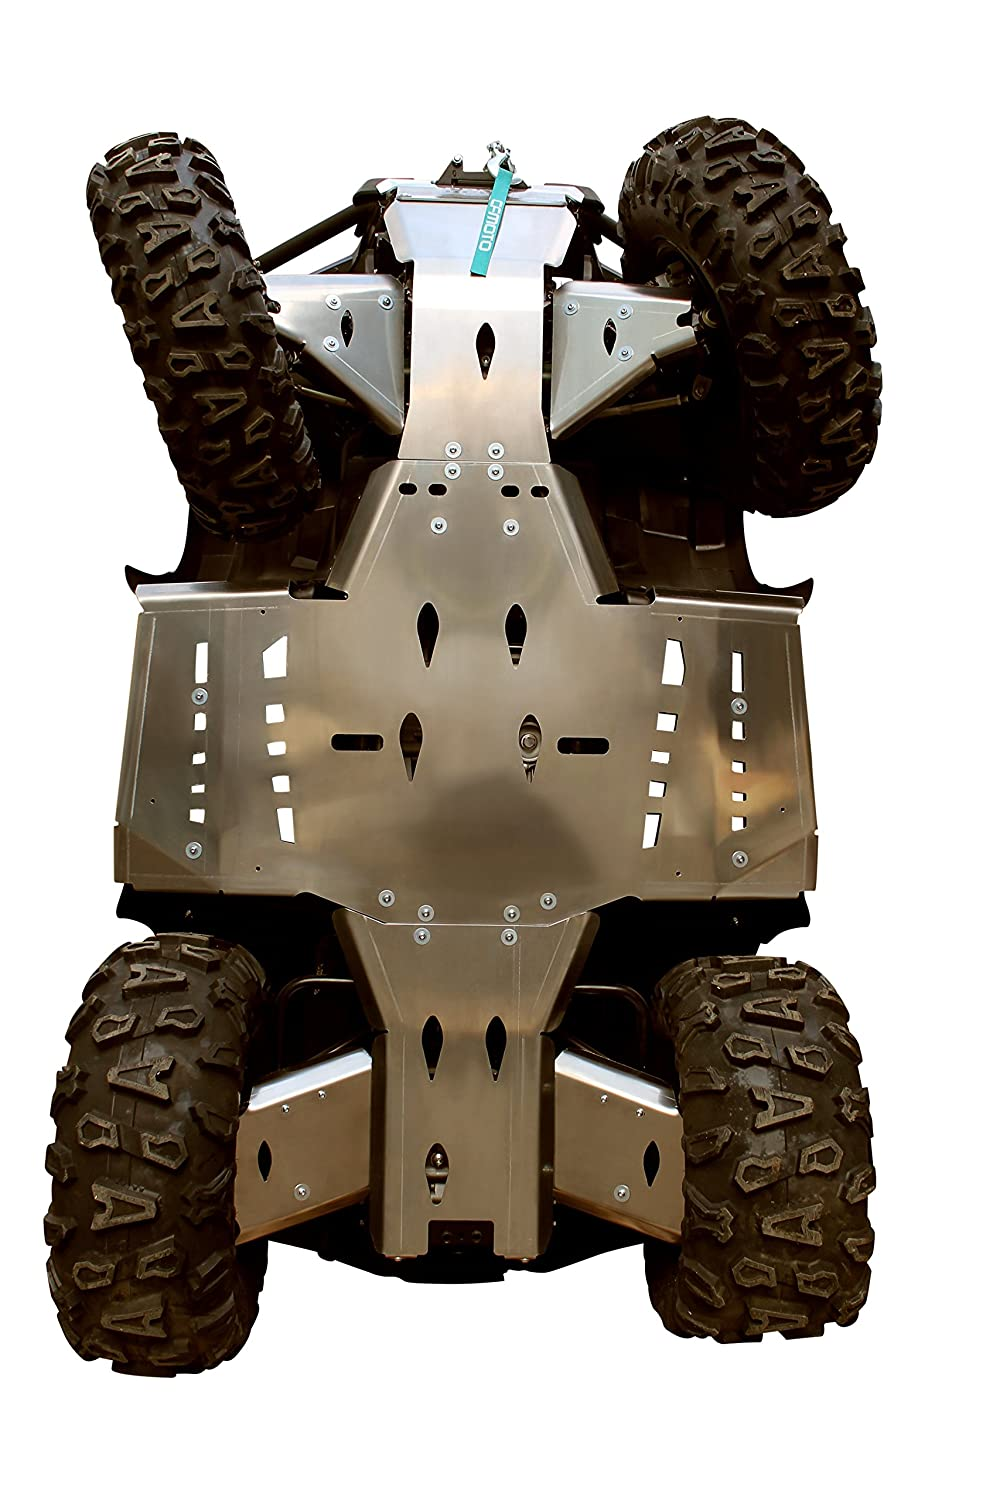 Skid plate Offroad CF Moto C Force 400/450/520 2015